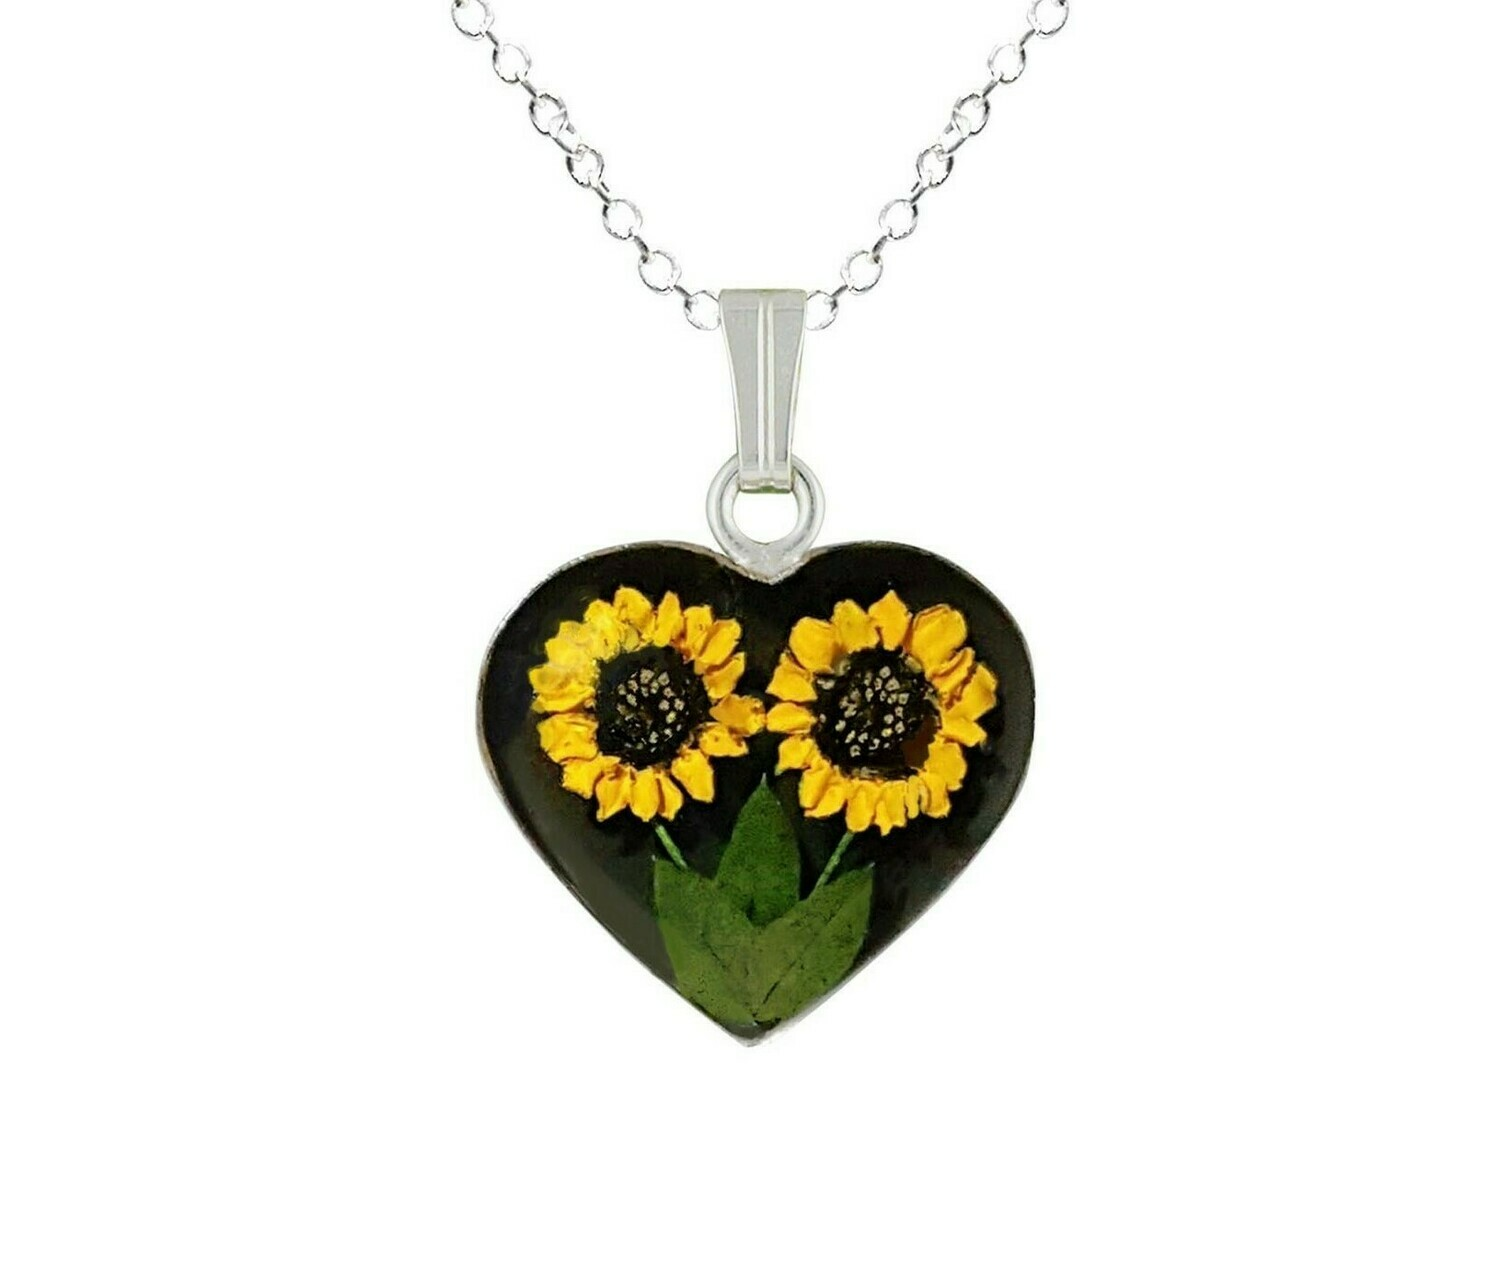 Sunflower Necklace, Medium Heart, Black Background